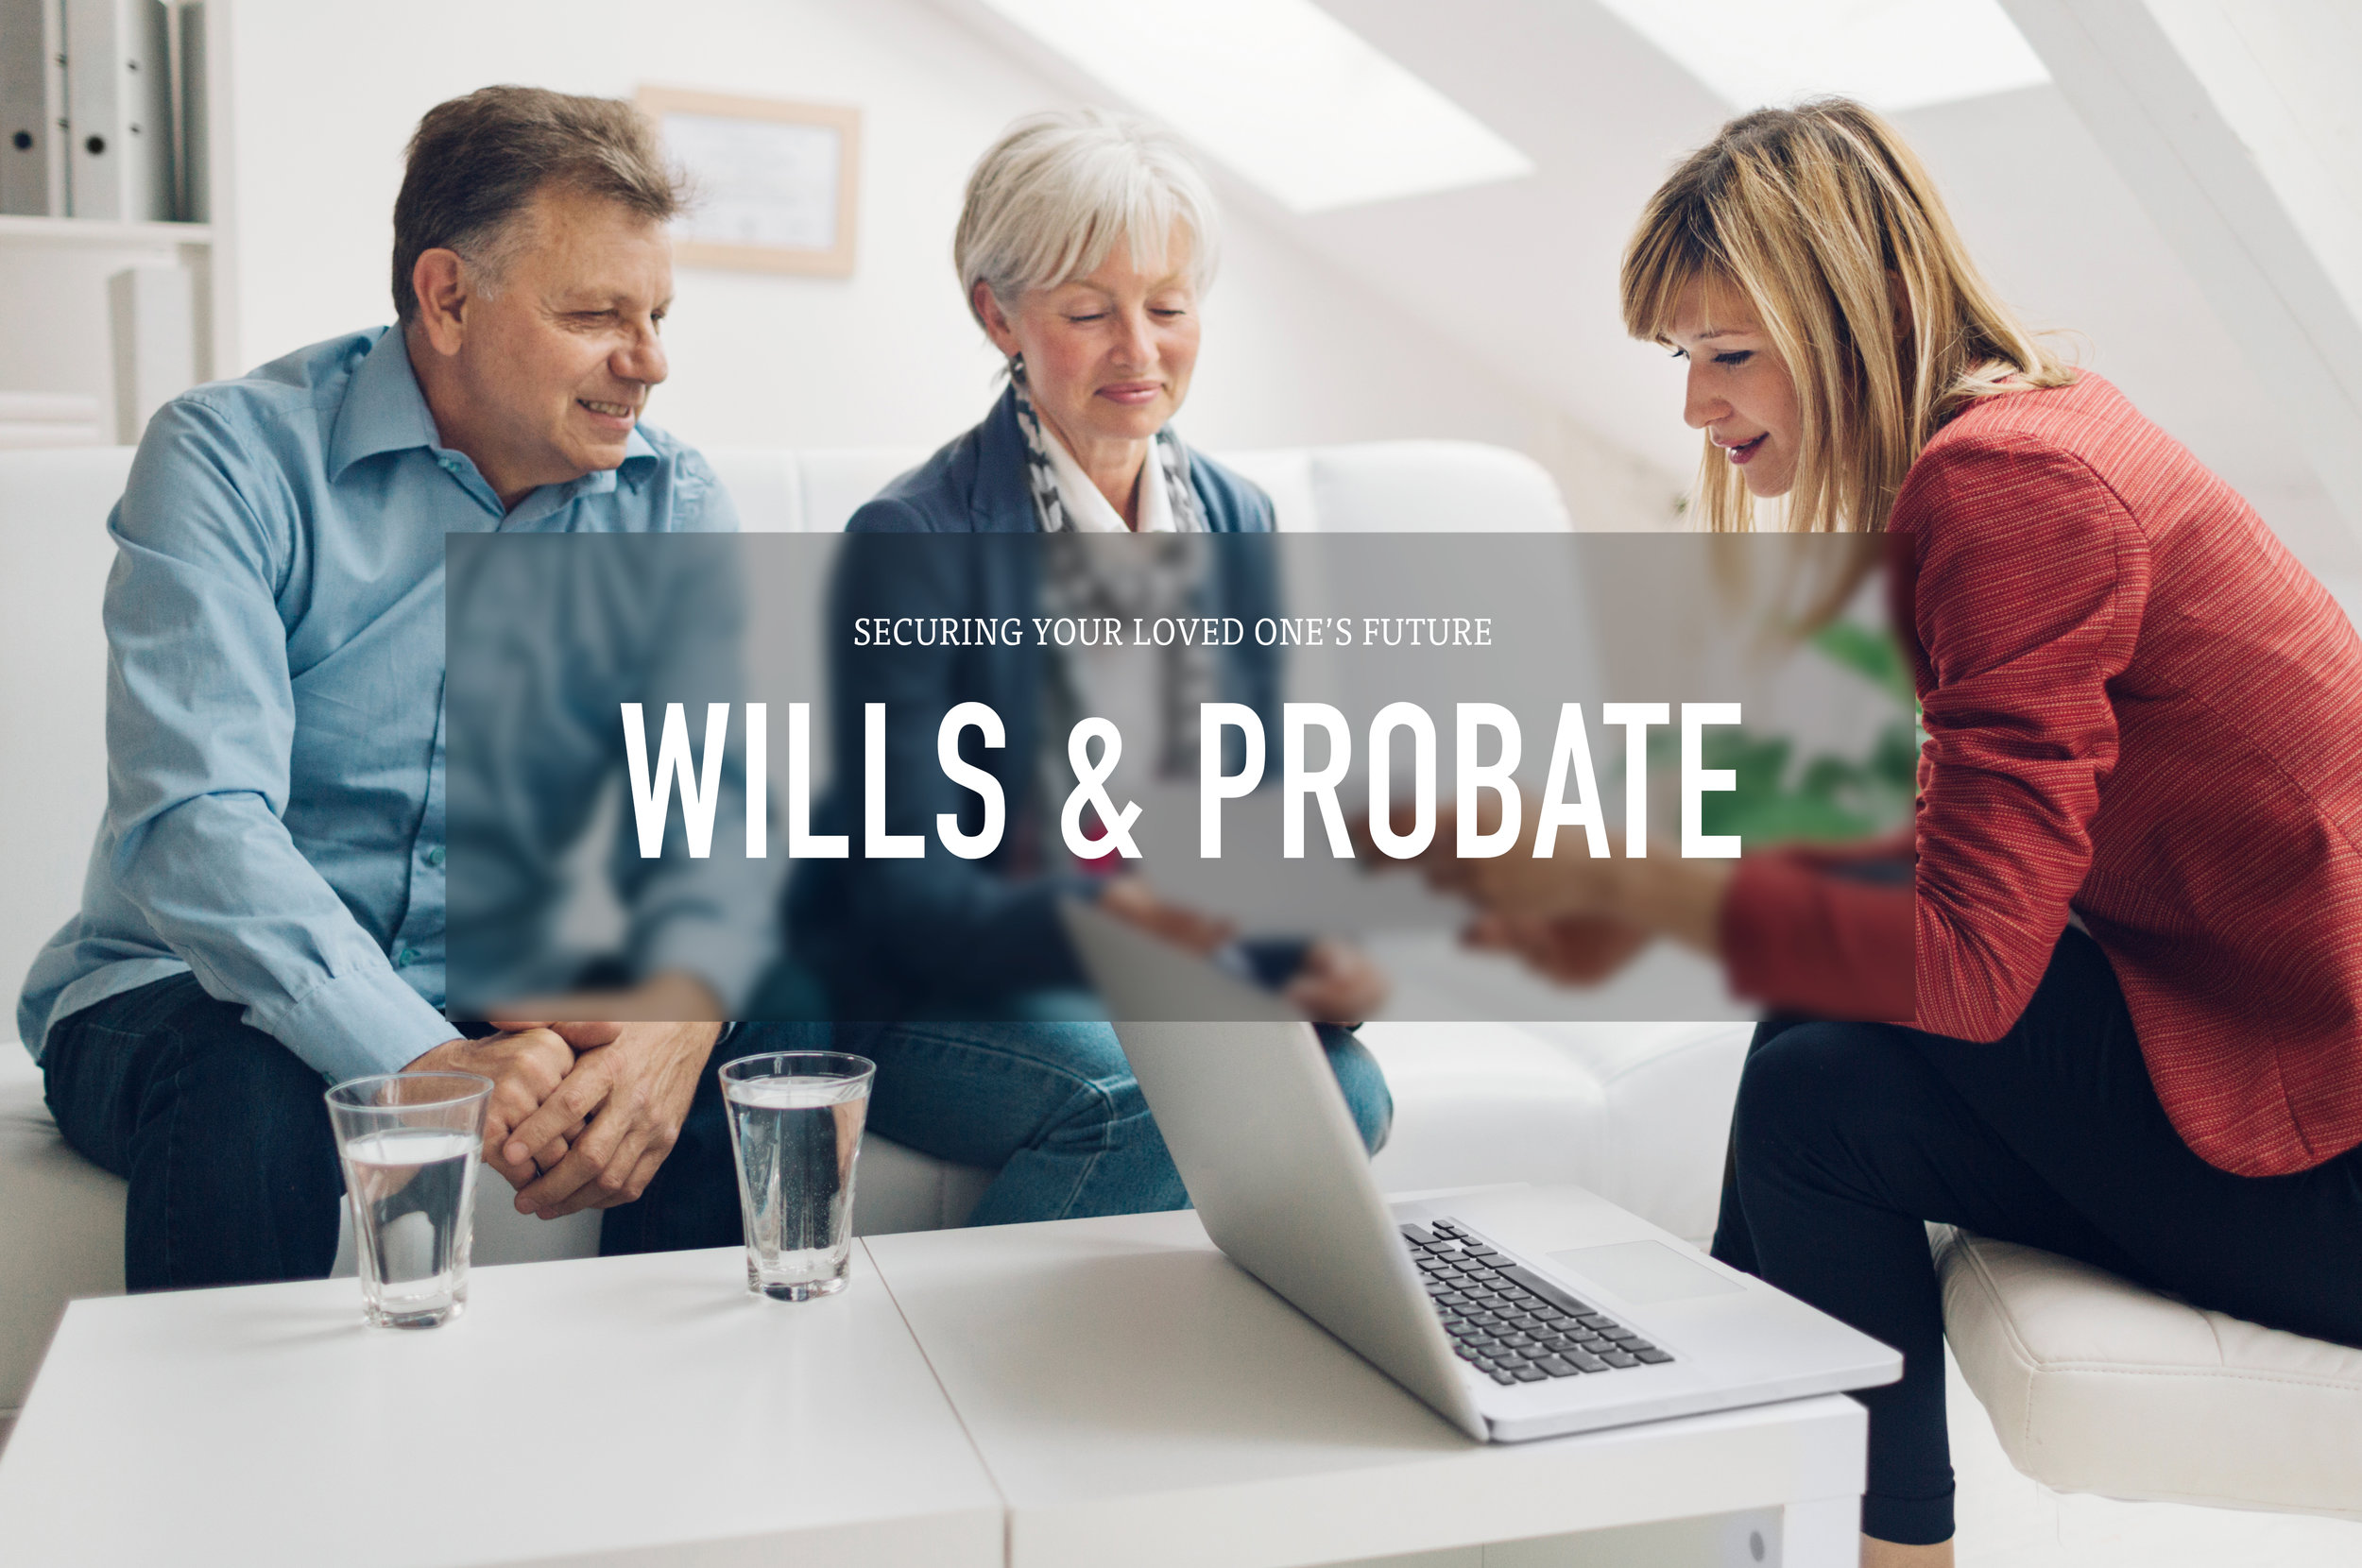 Wills&probate.jpg